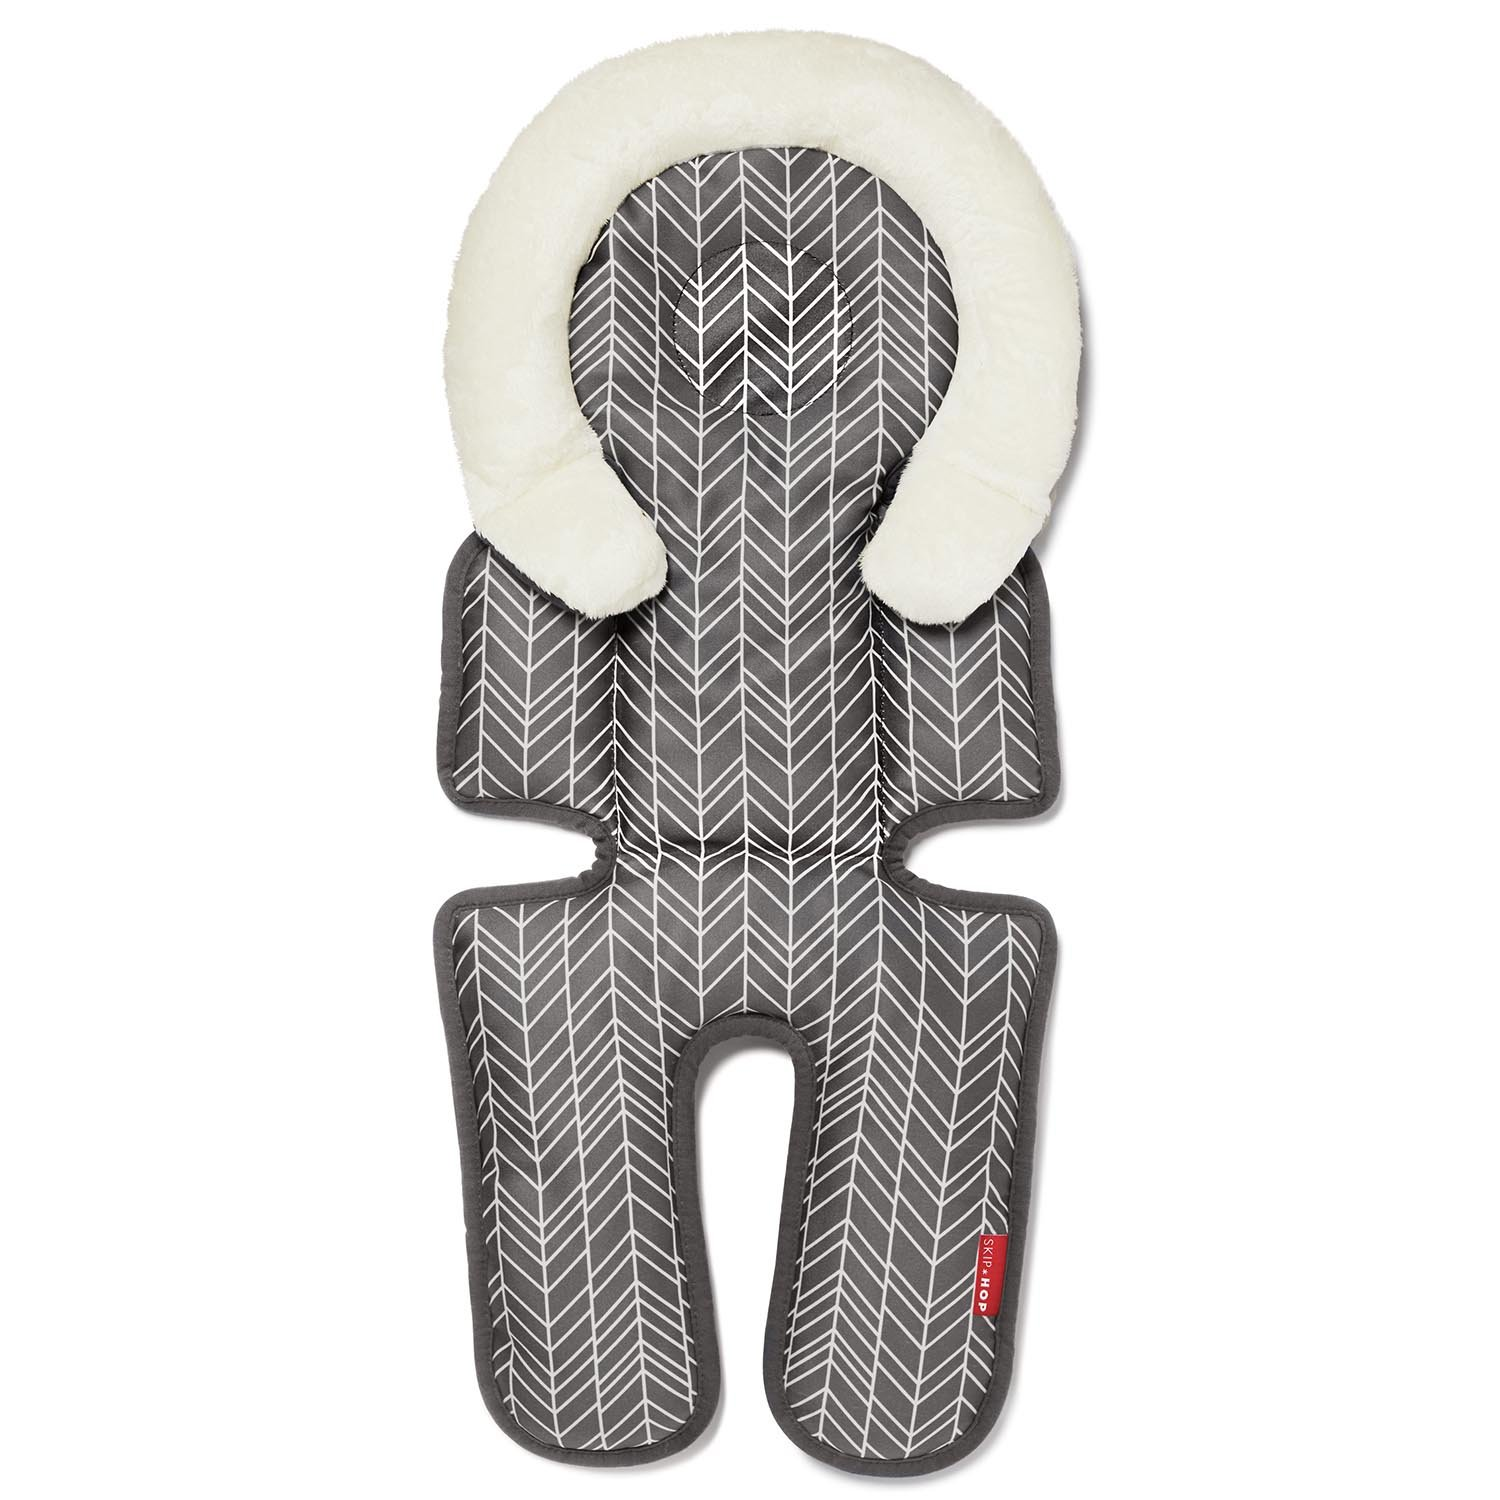 Skip Hop Stroll & Go Cool Touch Infant Support, Heather Grey 400433-CNSZP